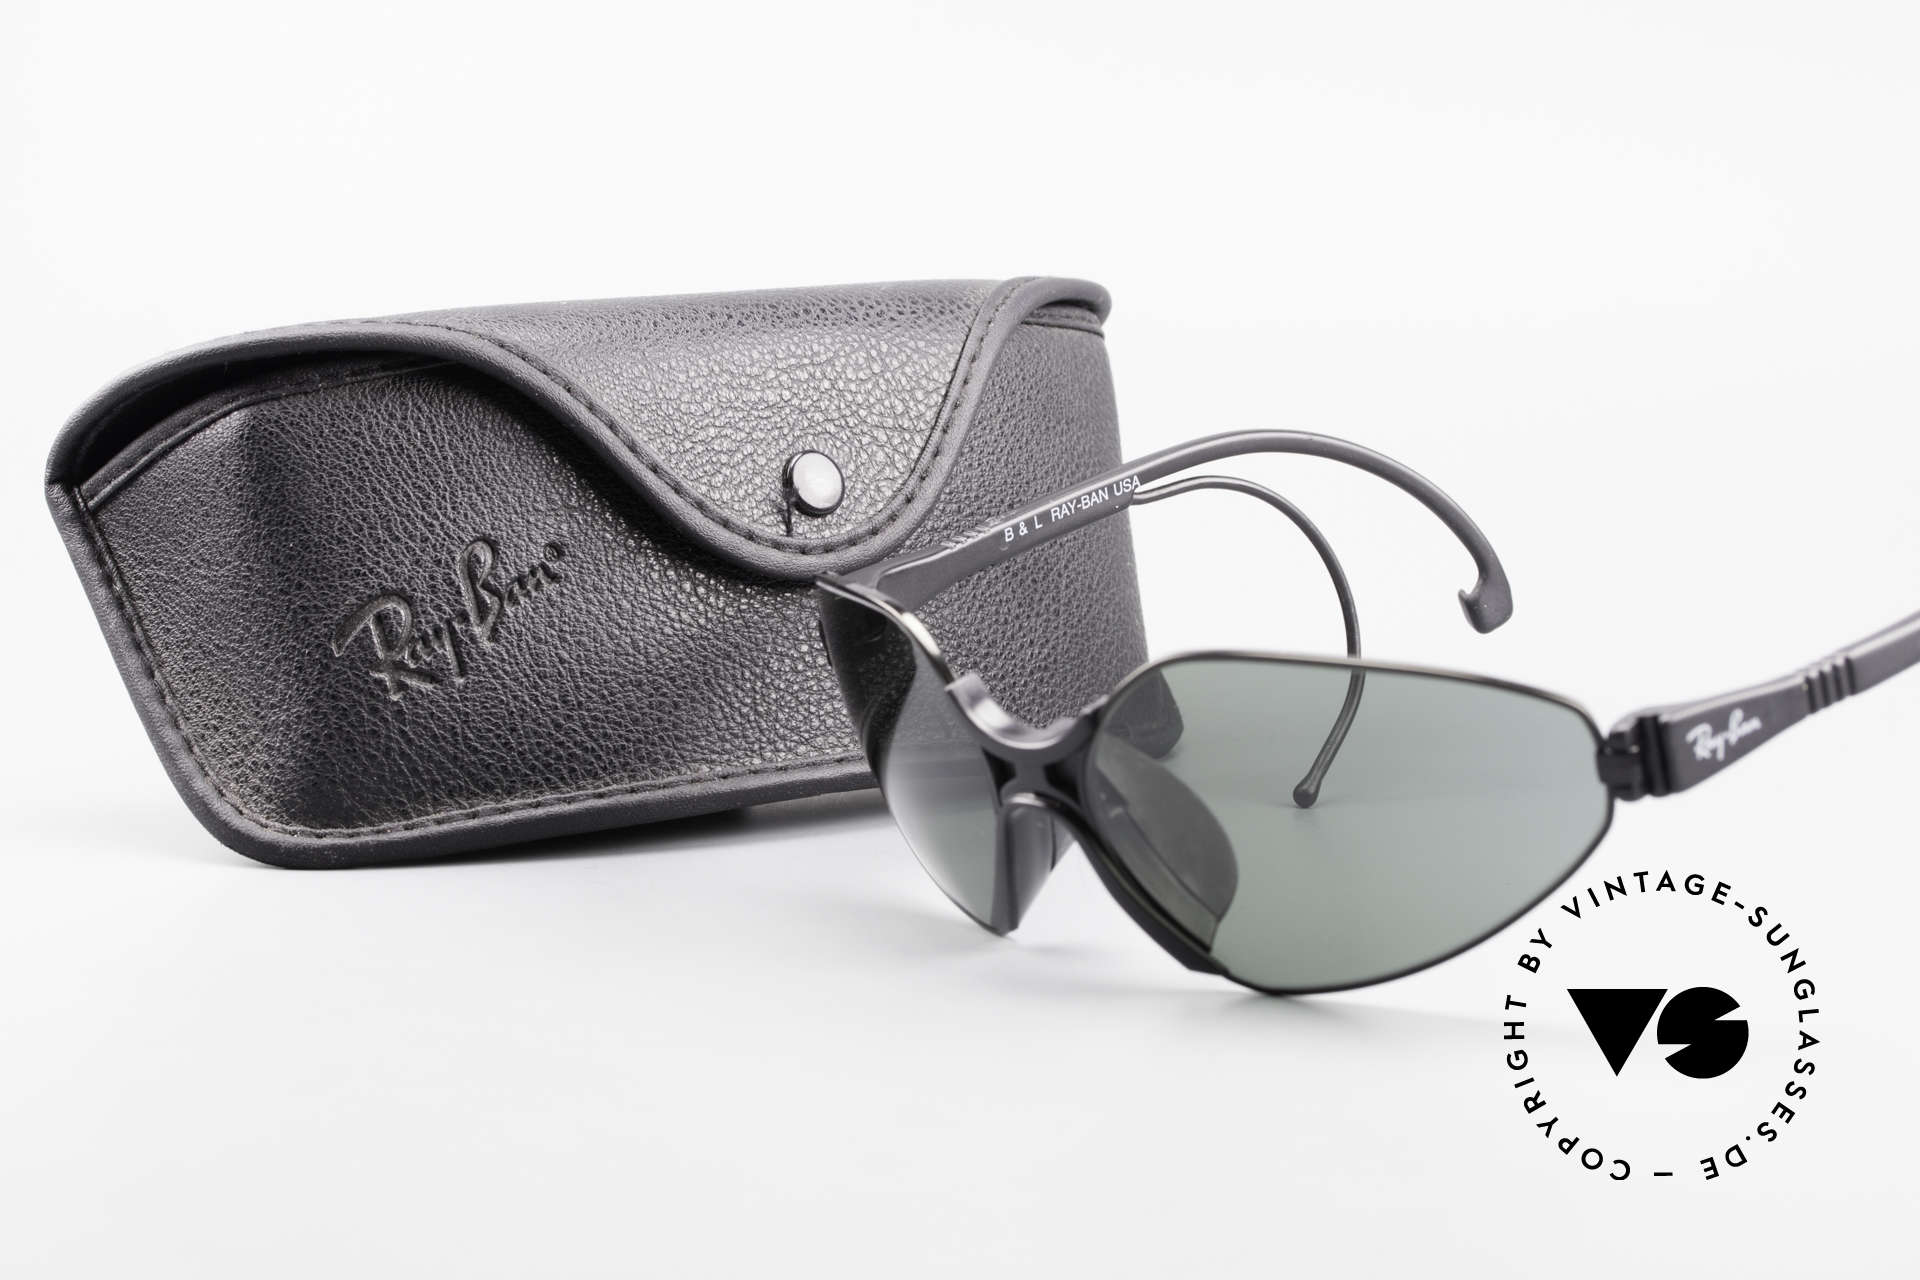 Ray Ban Sport Series 1 G20 Chromax B&L Sun Lenses, Size: large, Made for Men